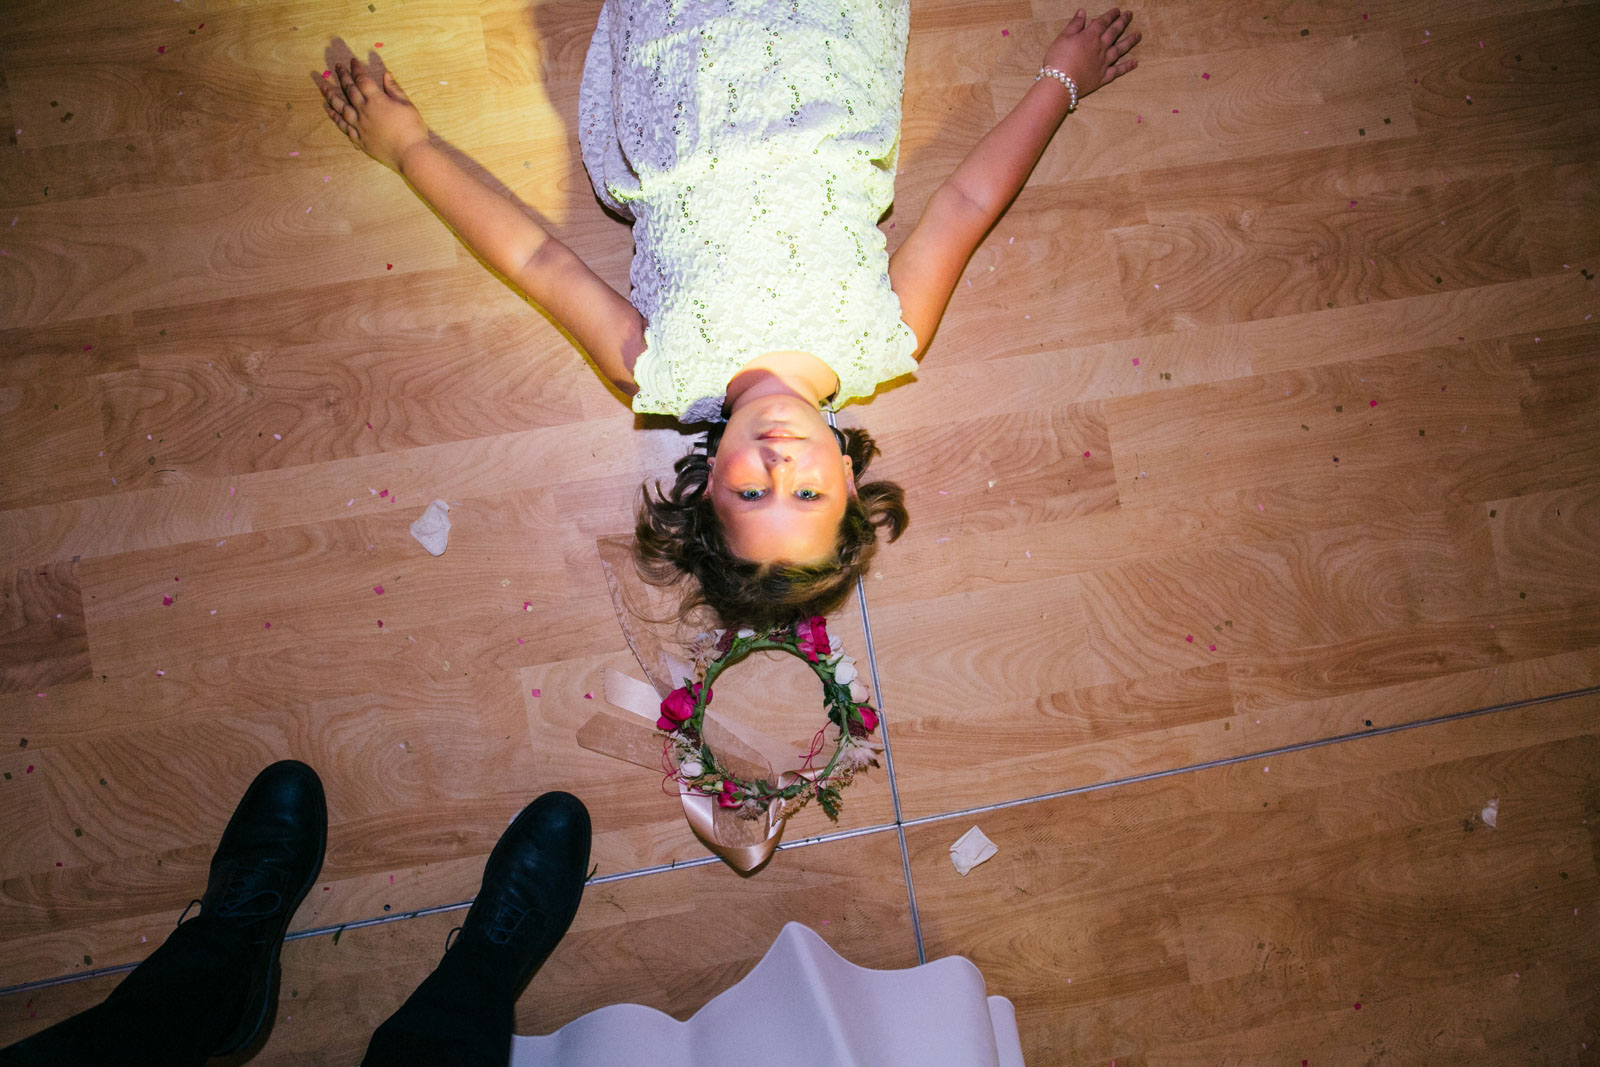 Flower girl being silly laying on the dance floor in front of colored lights from DJ.